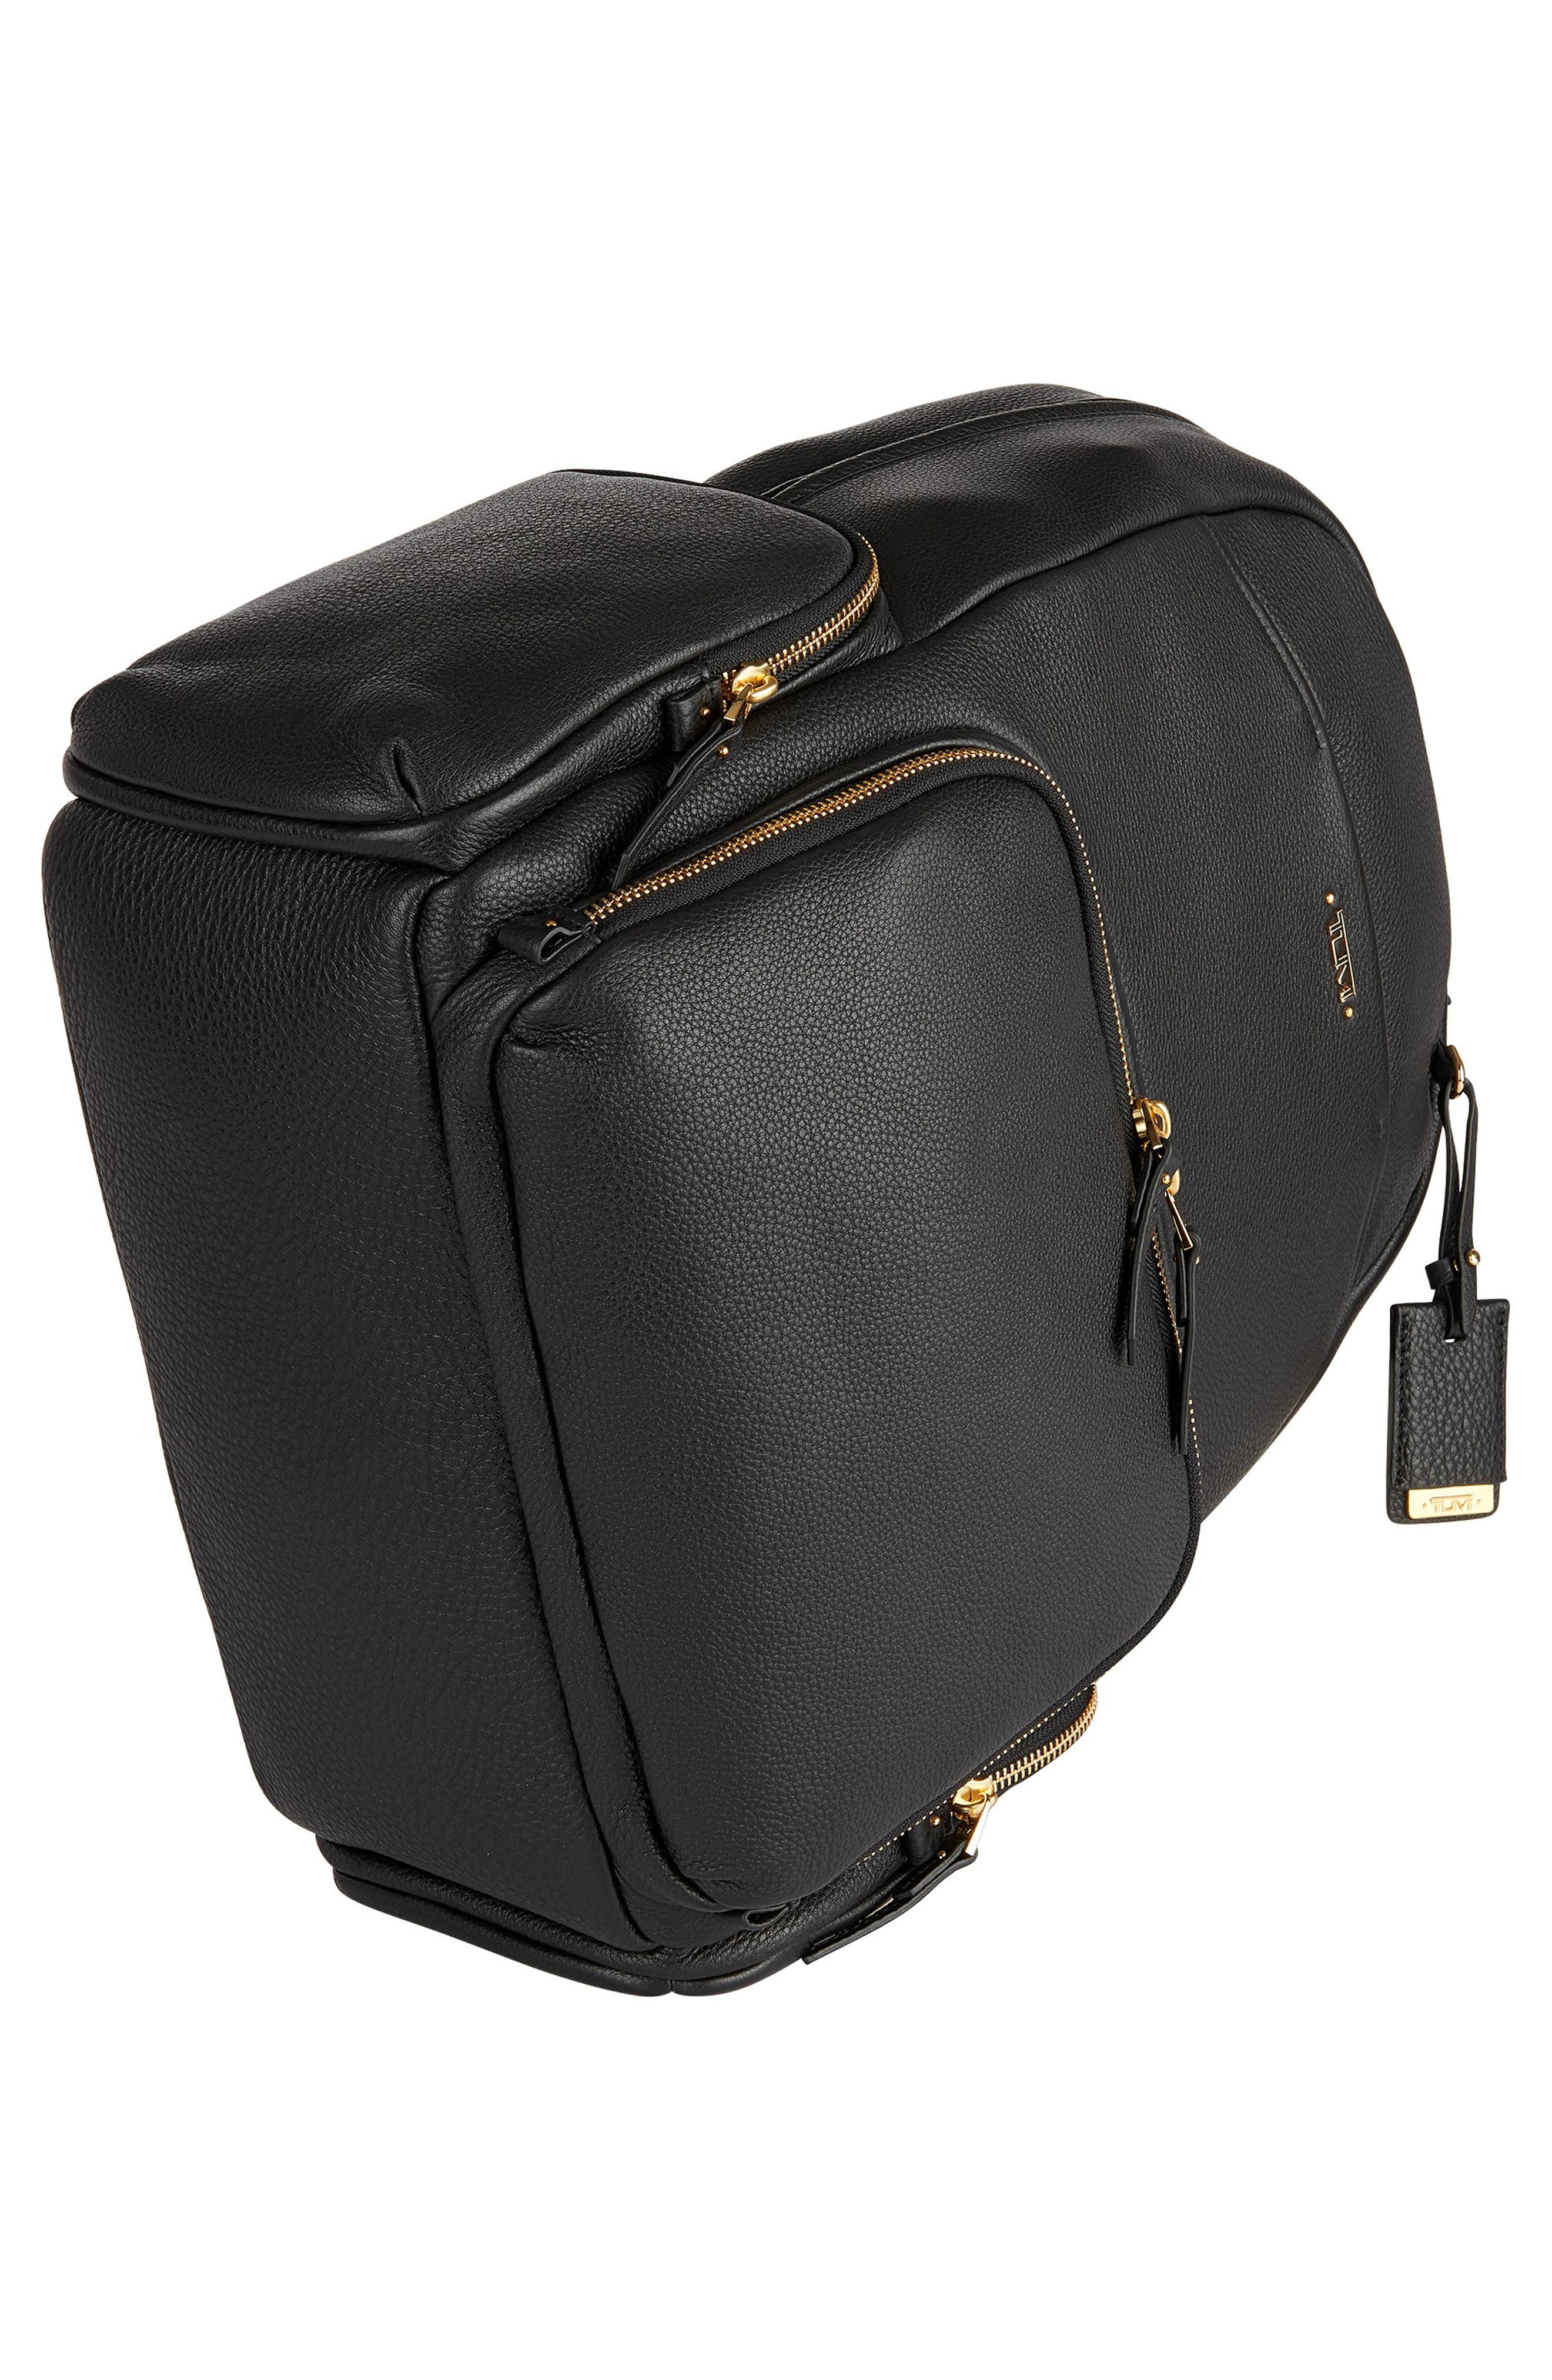 Calais Leather Computer Backpack,                             Alternate thumbnail 2, color,                             001